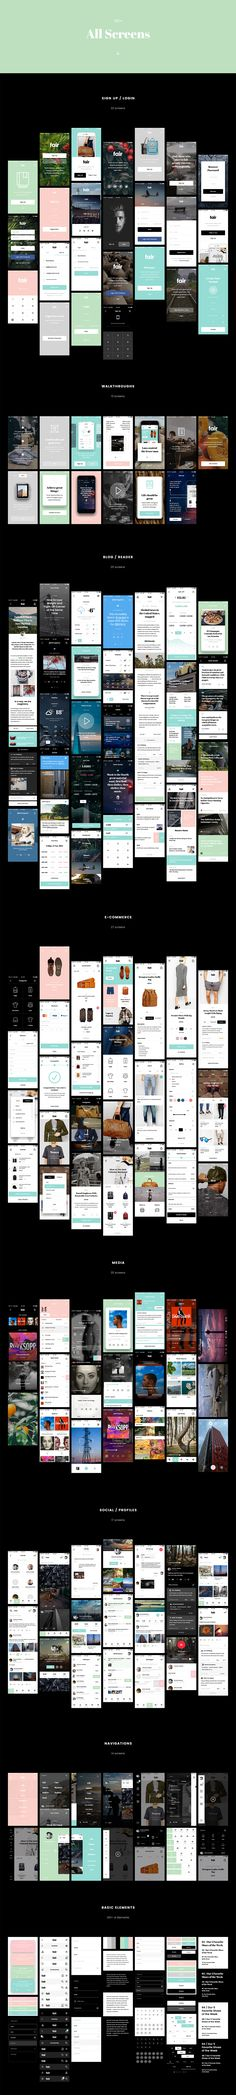 Fair UI Kit (130+ iOS screens) by Komol Kuchkarov on Creative Market